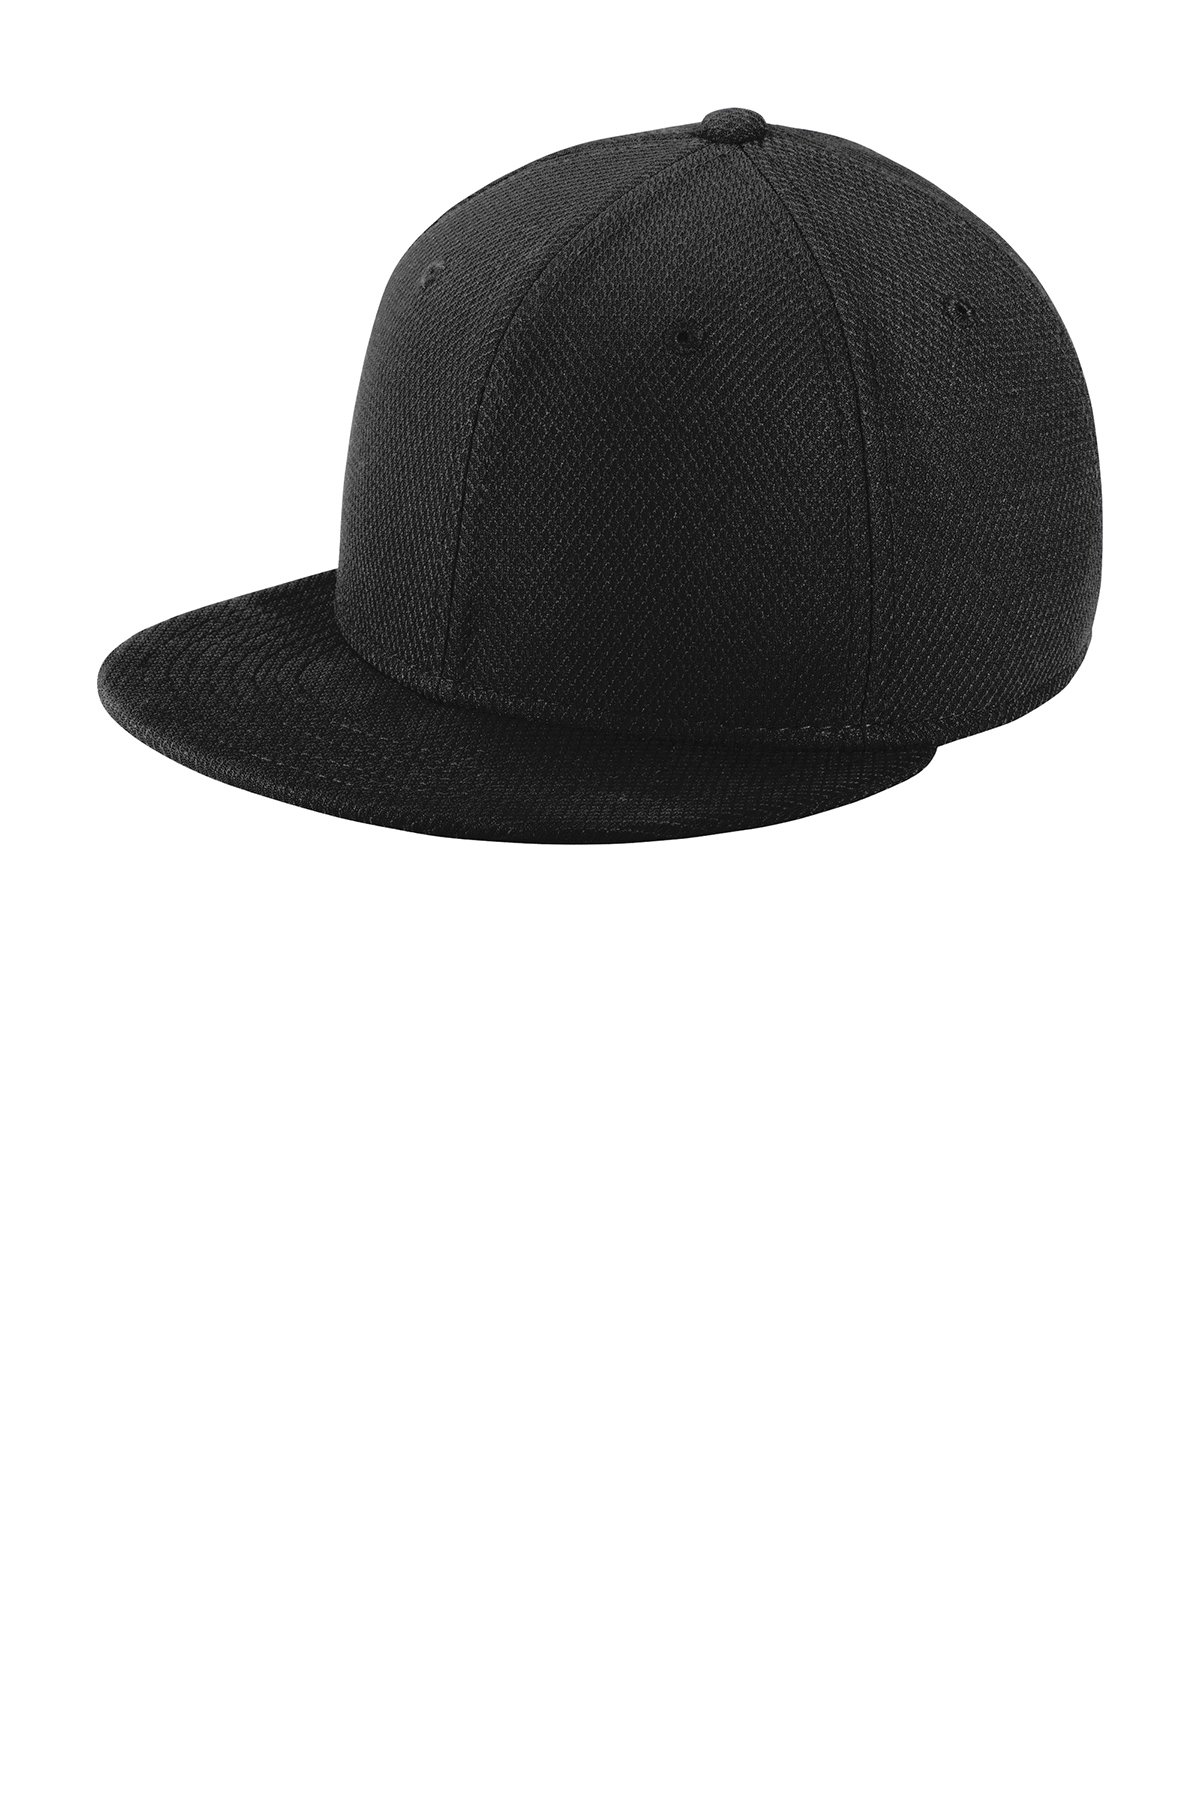 New Era NE304 - Youth Original Fit Diamond Era Flat ...